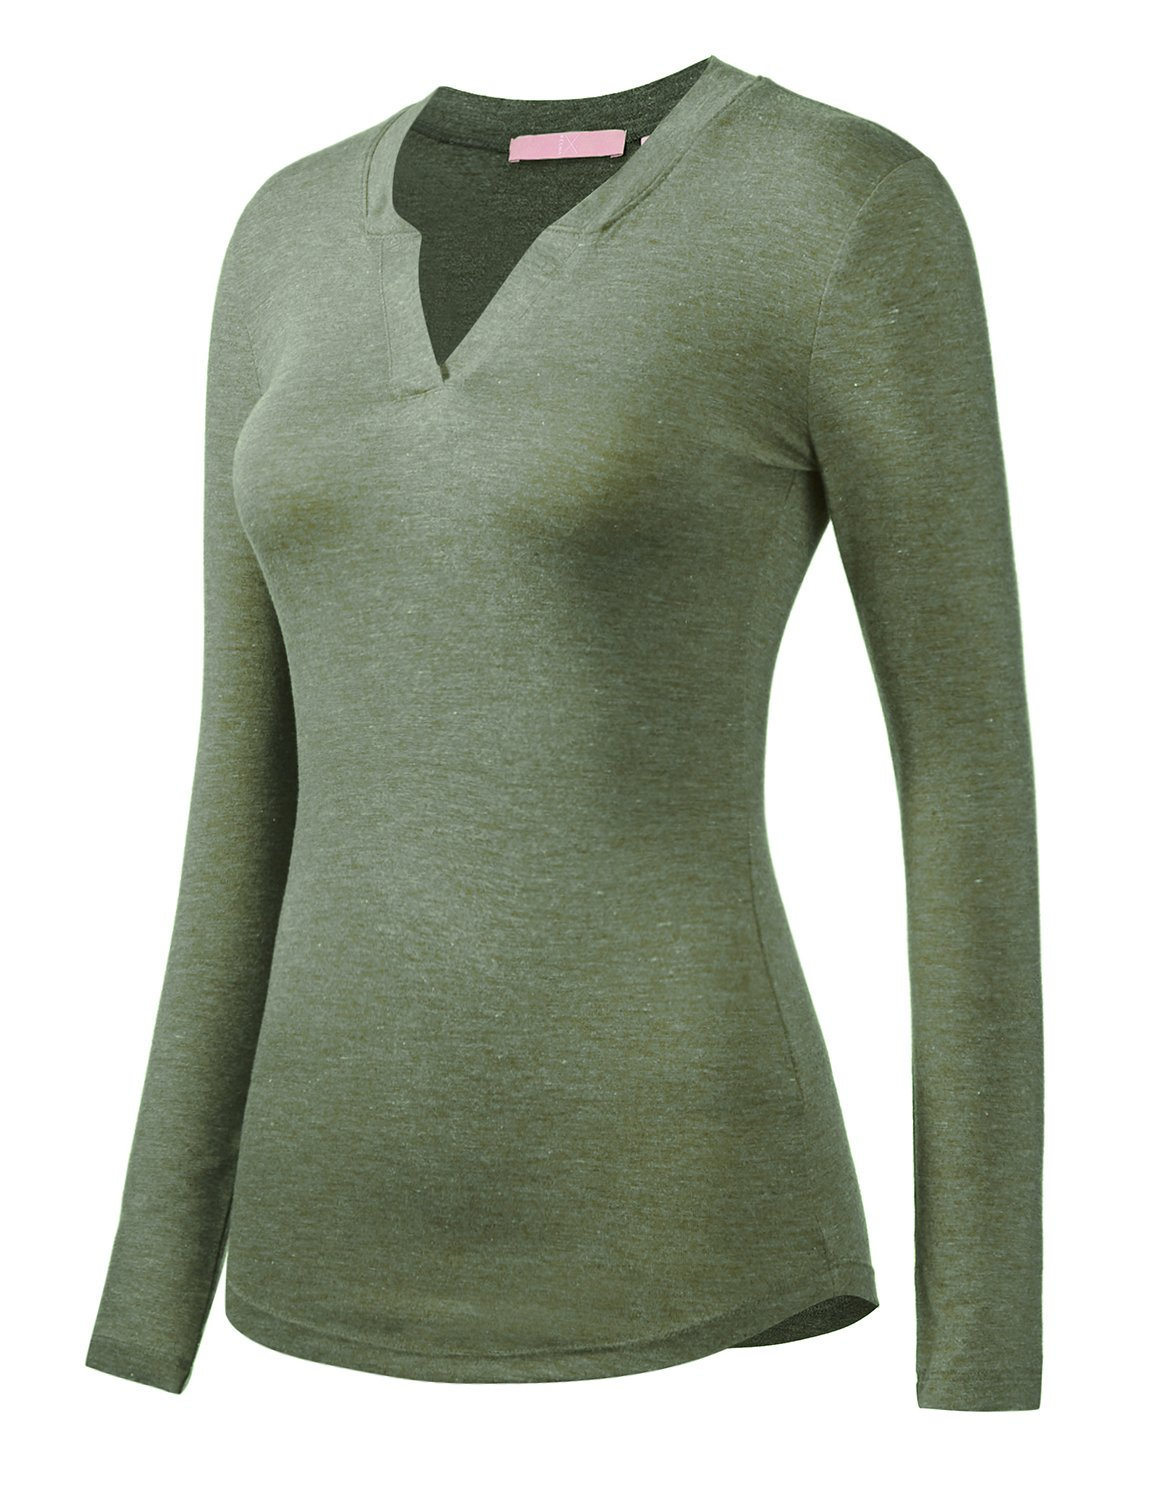 Regna X Women's Small v-Neck wear to Work Office Long Sleeve Green Shirts by Regna X